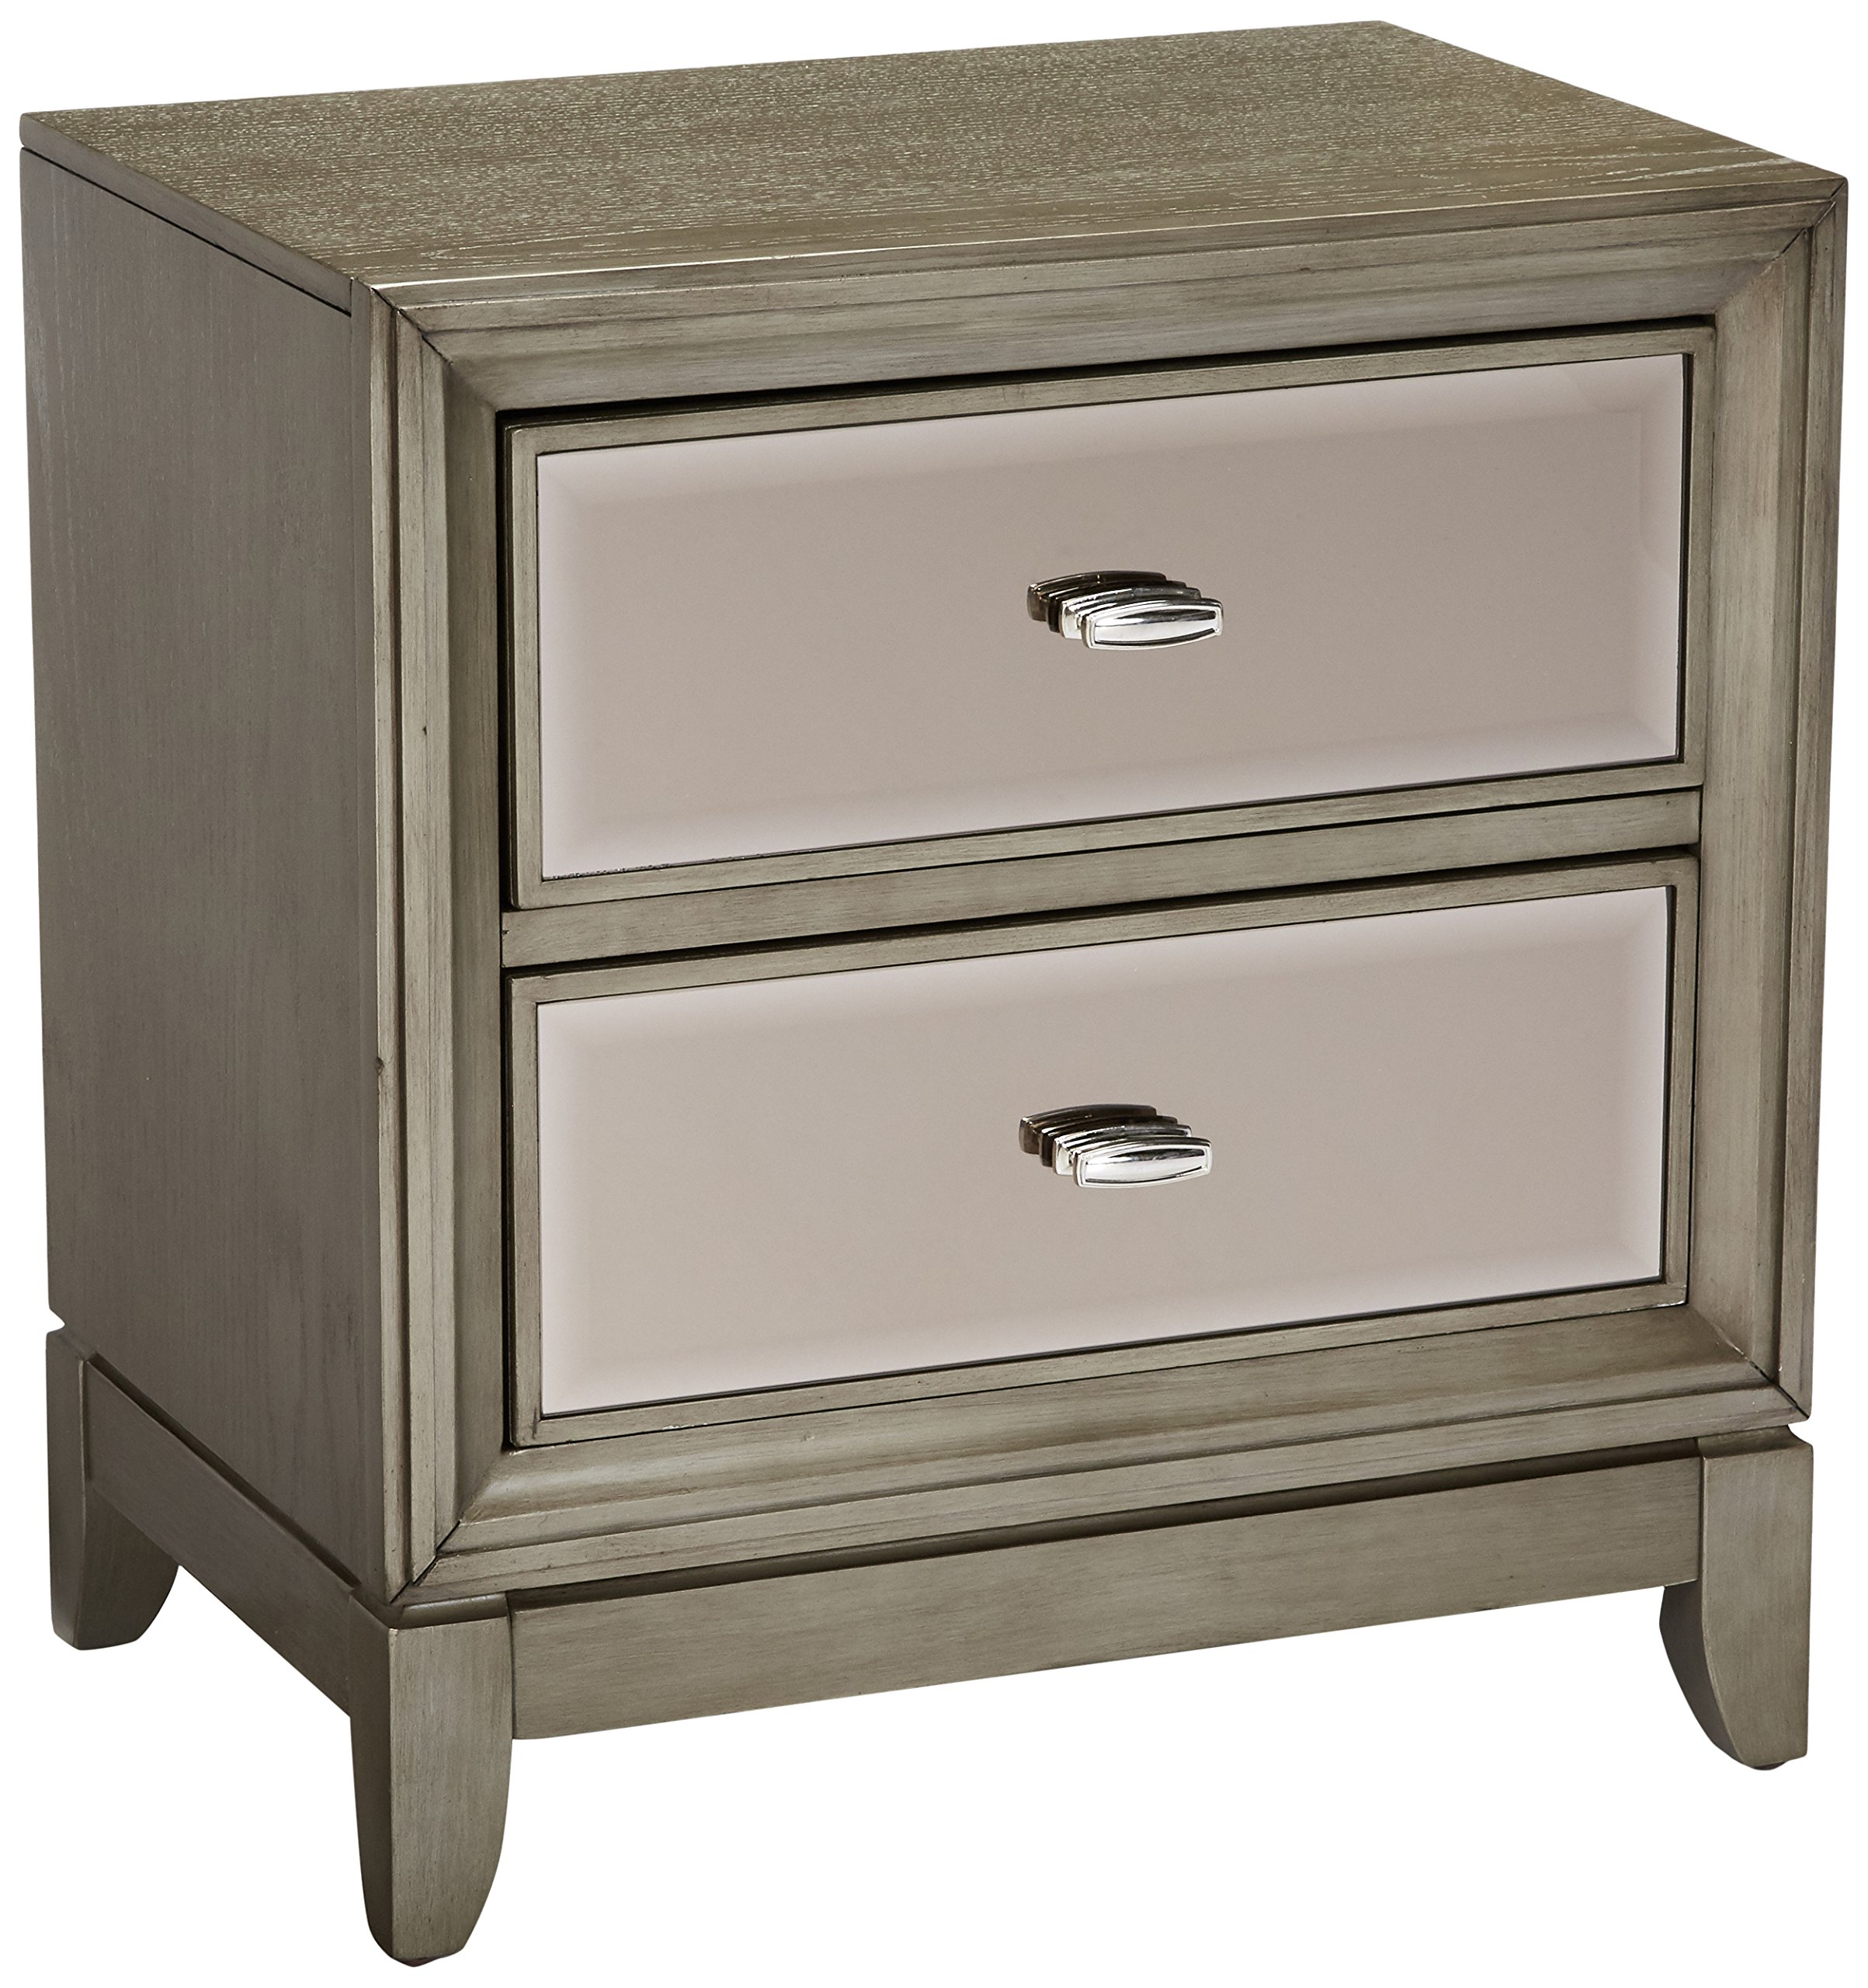 24/7 Shop at Home 247SHOPATHOME IDF-7295SV-N, nightstand, Silver - Materials: solid wood, veneer & Glass Colour: Silver Finish/ gold-tinted mirror in drawer panels Features spacious drawers - nightstands, bedroom-furniture, bedroom - 91RgNJgWI1L -